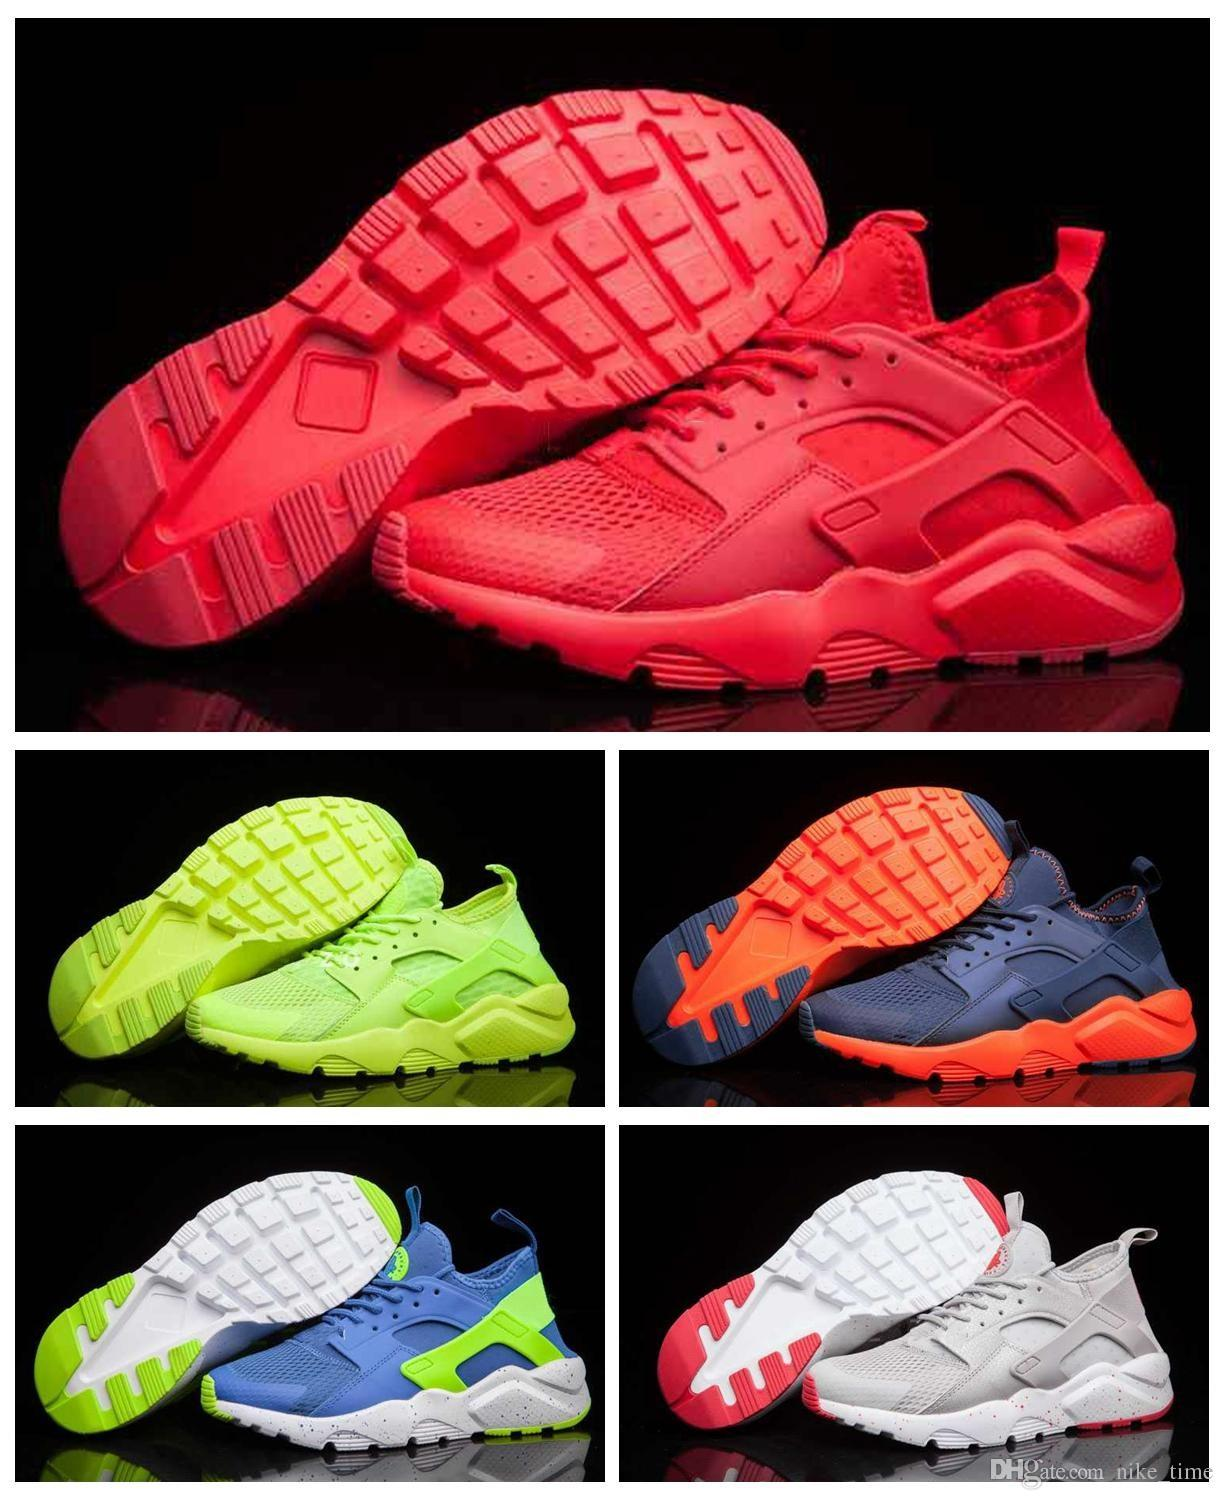 601fad4ef7fa 2018 New Air Huarache Ultra Breathe All Red Mesh Huarache Shoes Men And  Women S Air Huaraches Running Sneakers Size 36 46 Winter Running Shoes  White Running ...